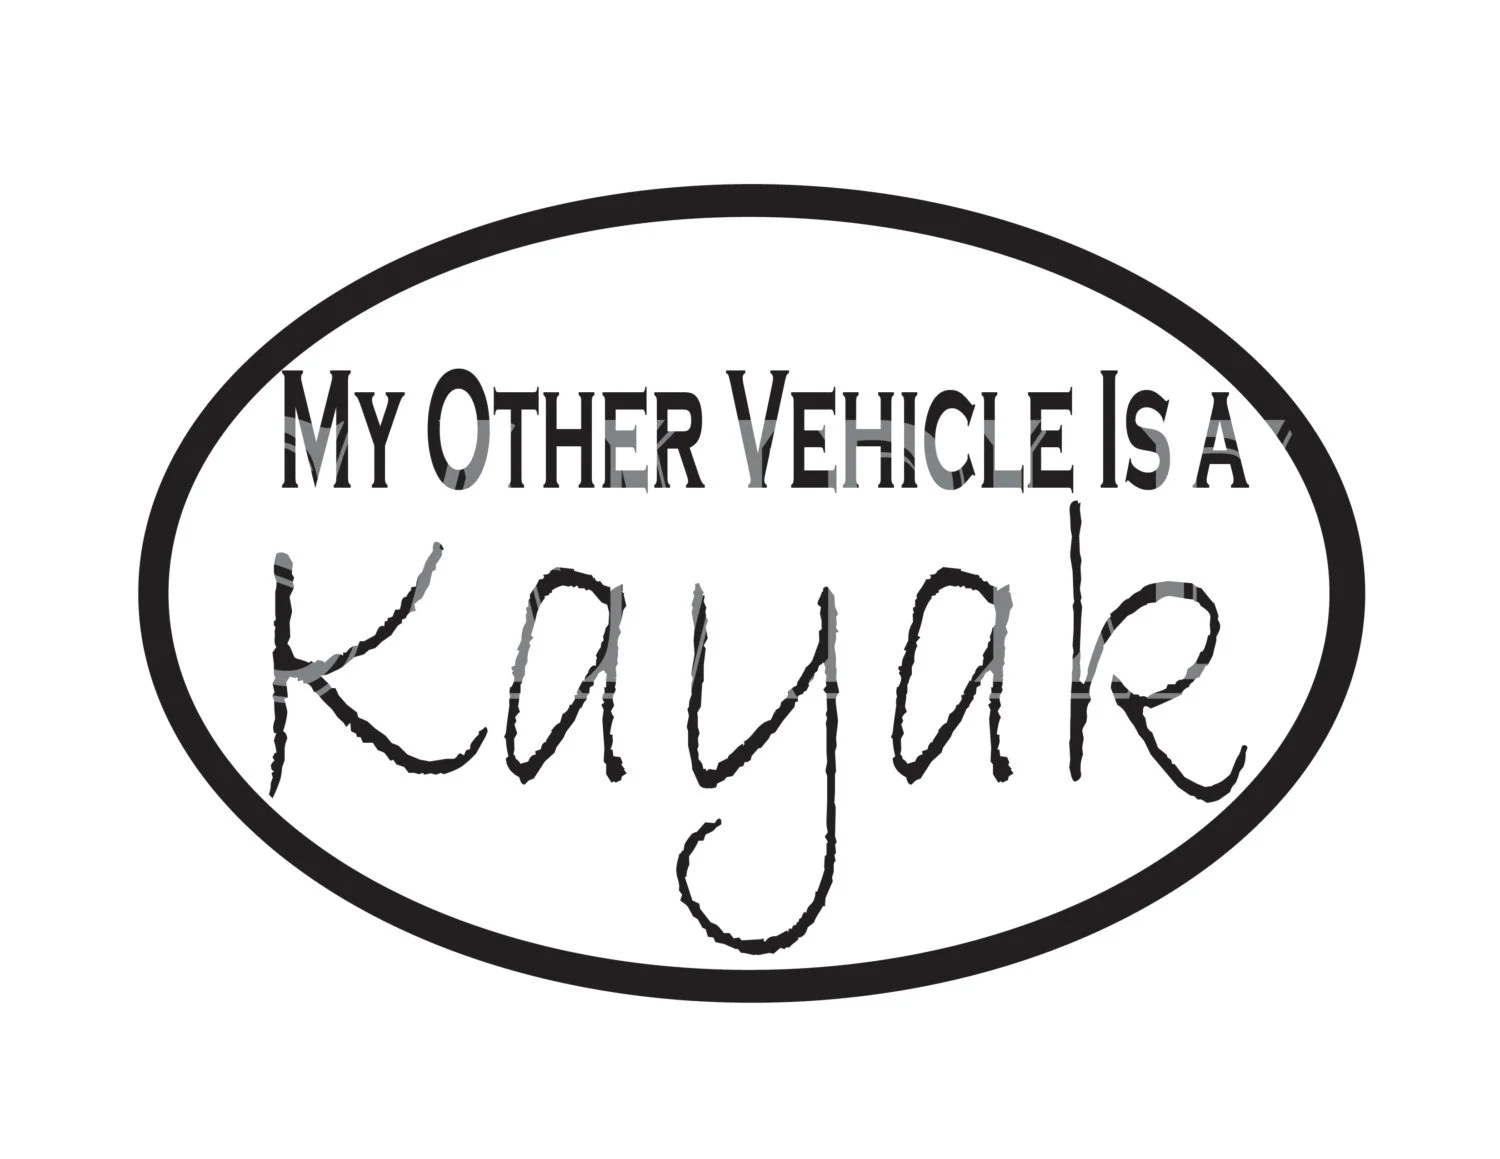 Kayak SVG Image File for Vinyl Cut Out Die Cutter My Other